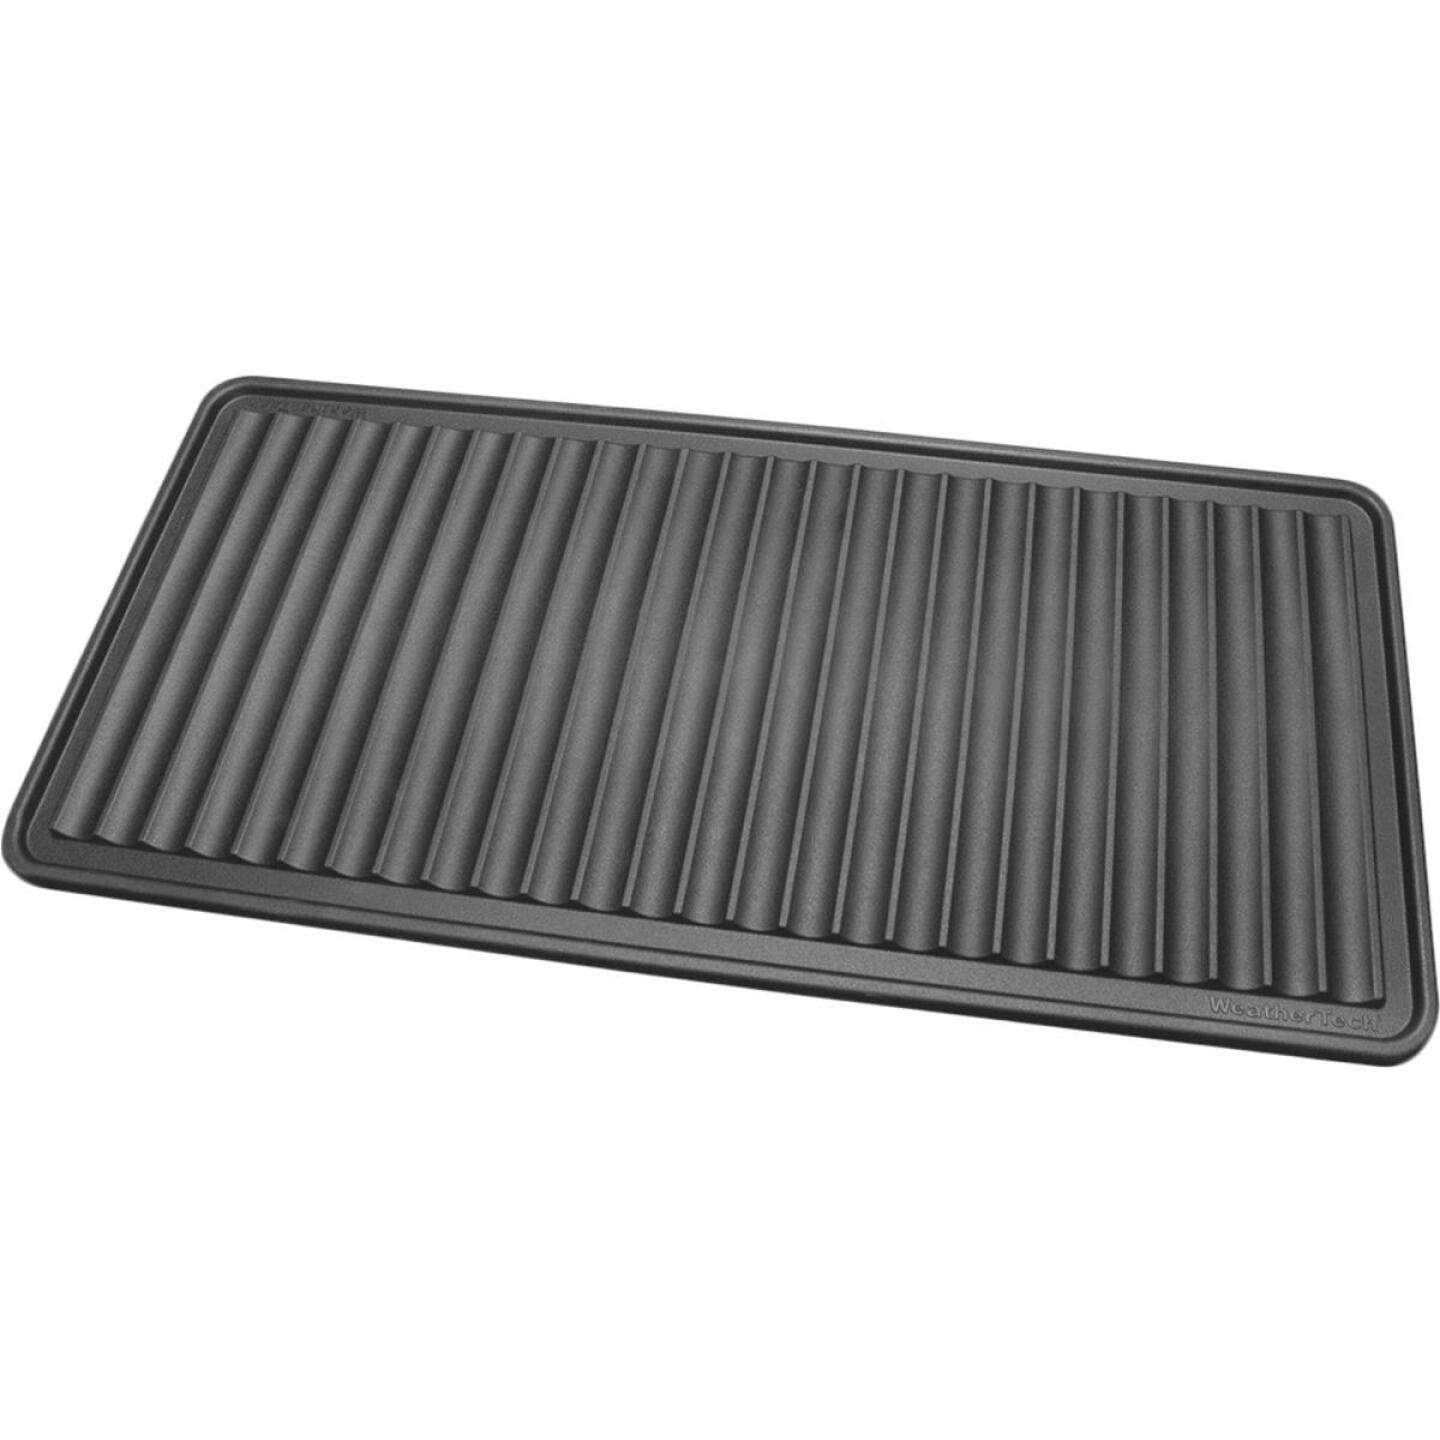 WeatherTech 16 In. x 36 In. Black Boot Tray Image 1